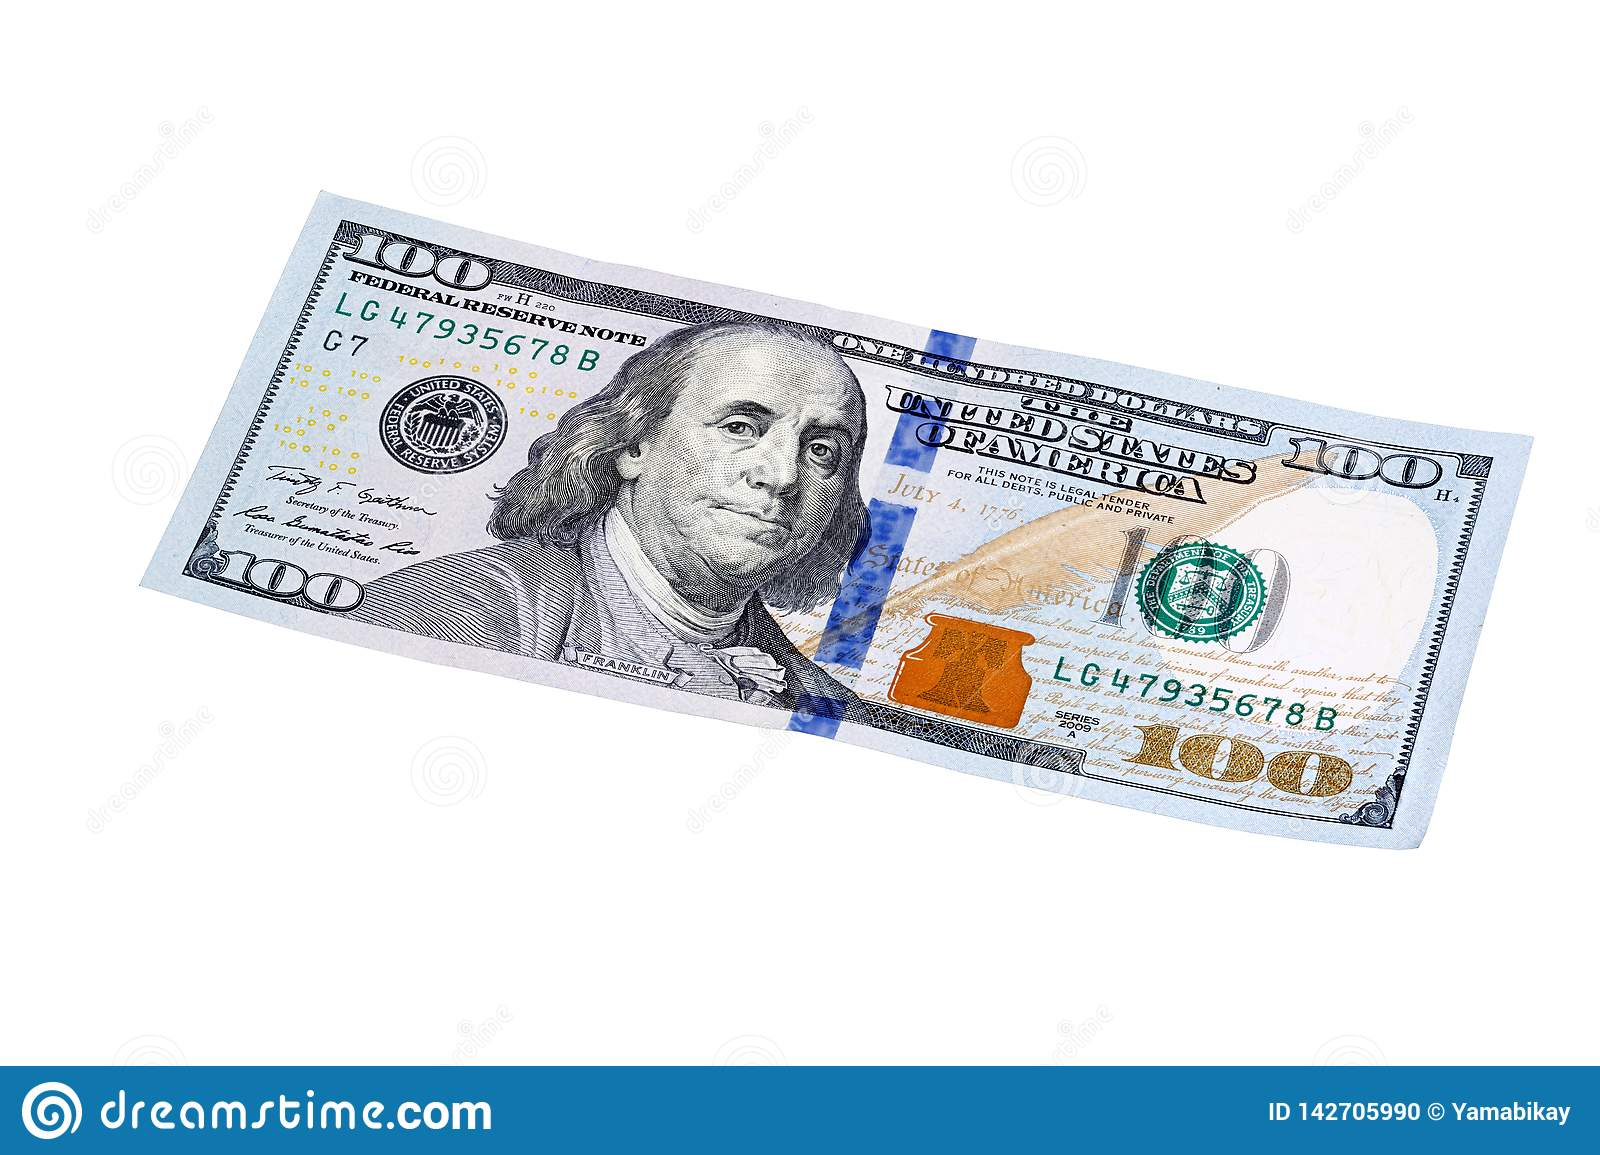 New Design Of US Currency One Hundred Dollar Bills Isolated